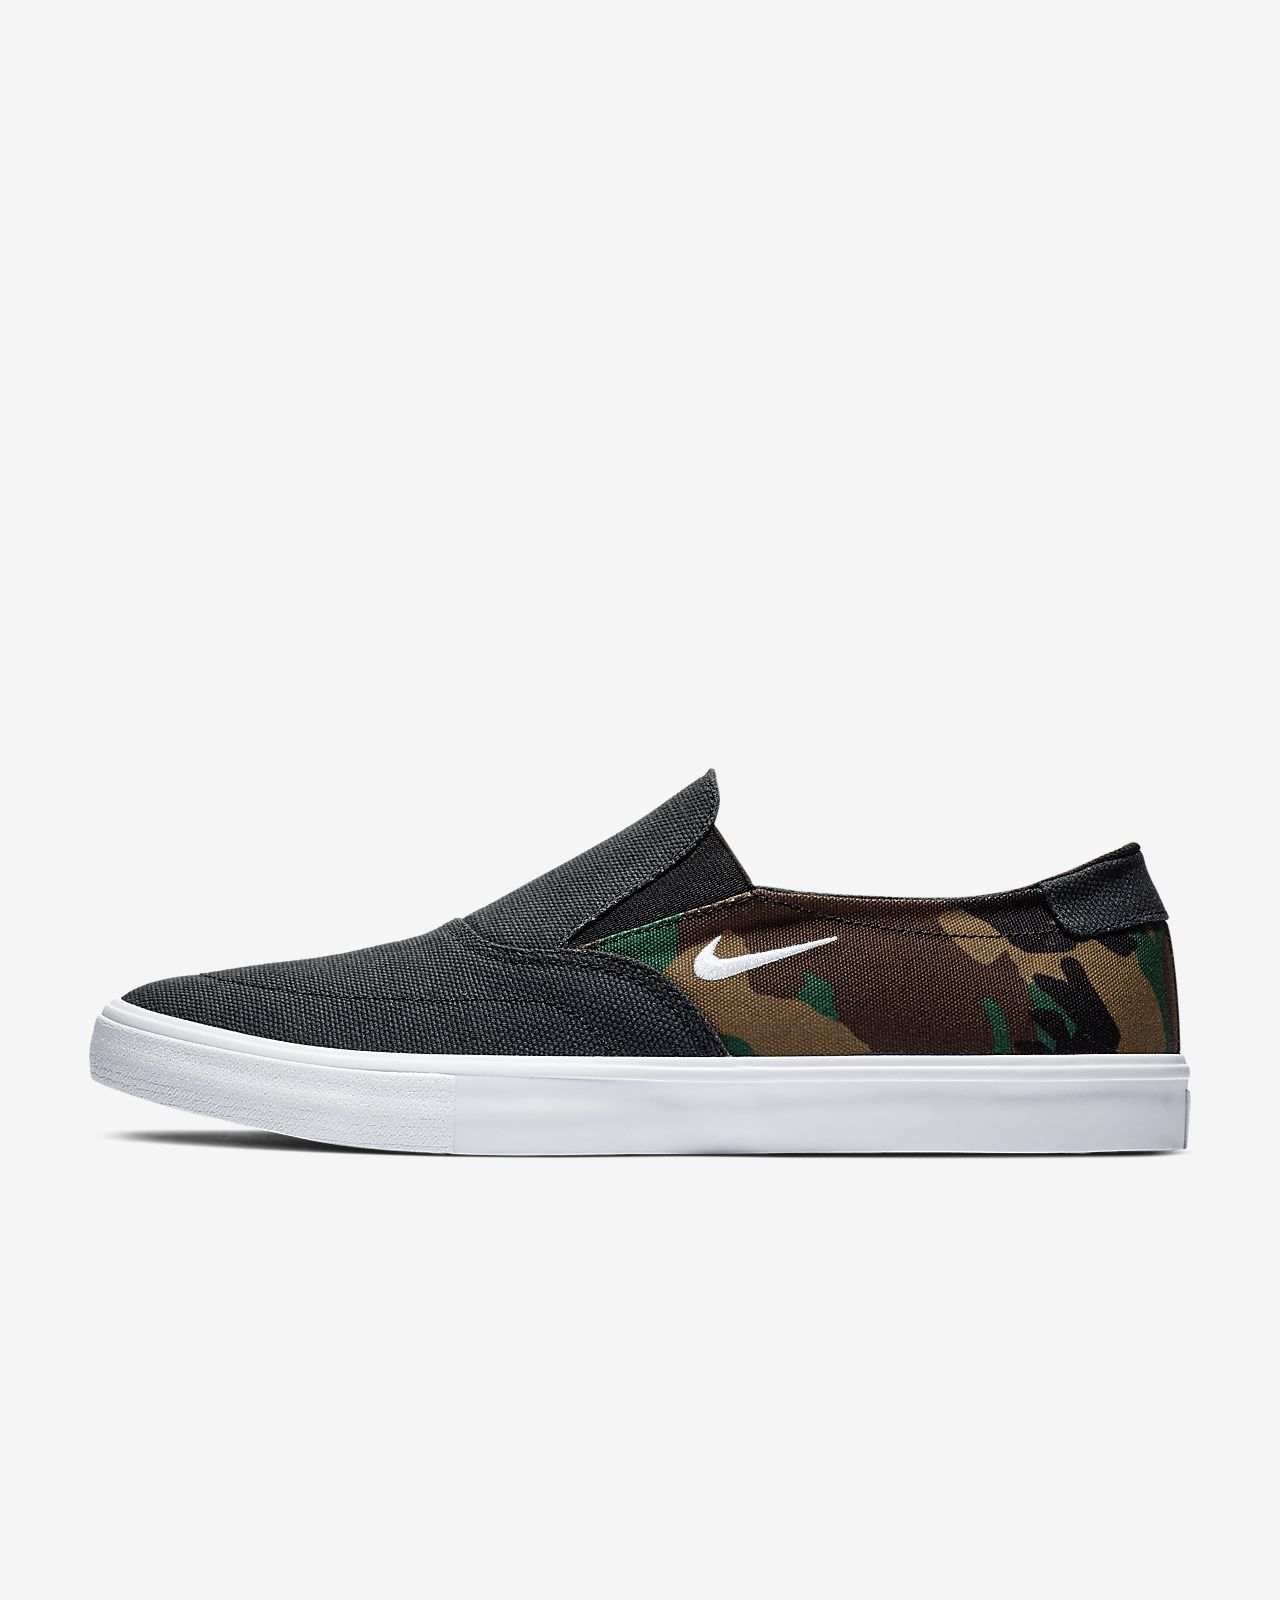 7a4d93f7176 Nike SB Portmore II Solarsoft Slip-on Men s Skateboarding Shoe. Nike ...